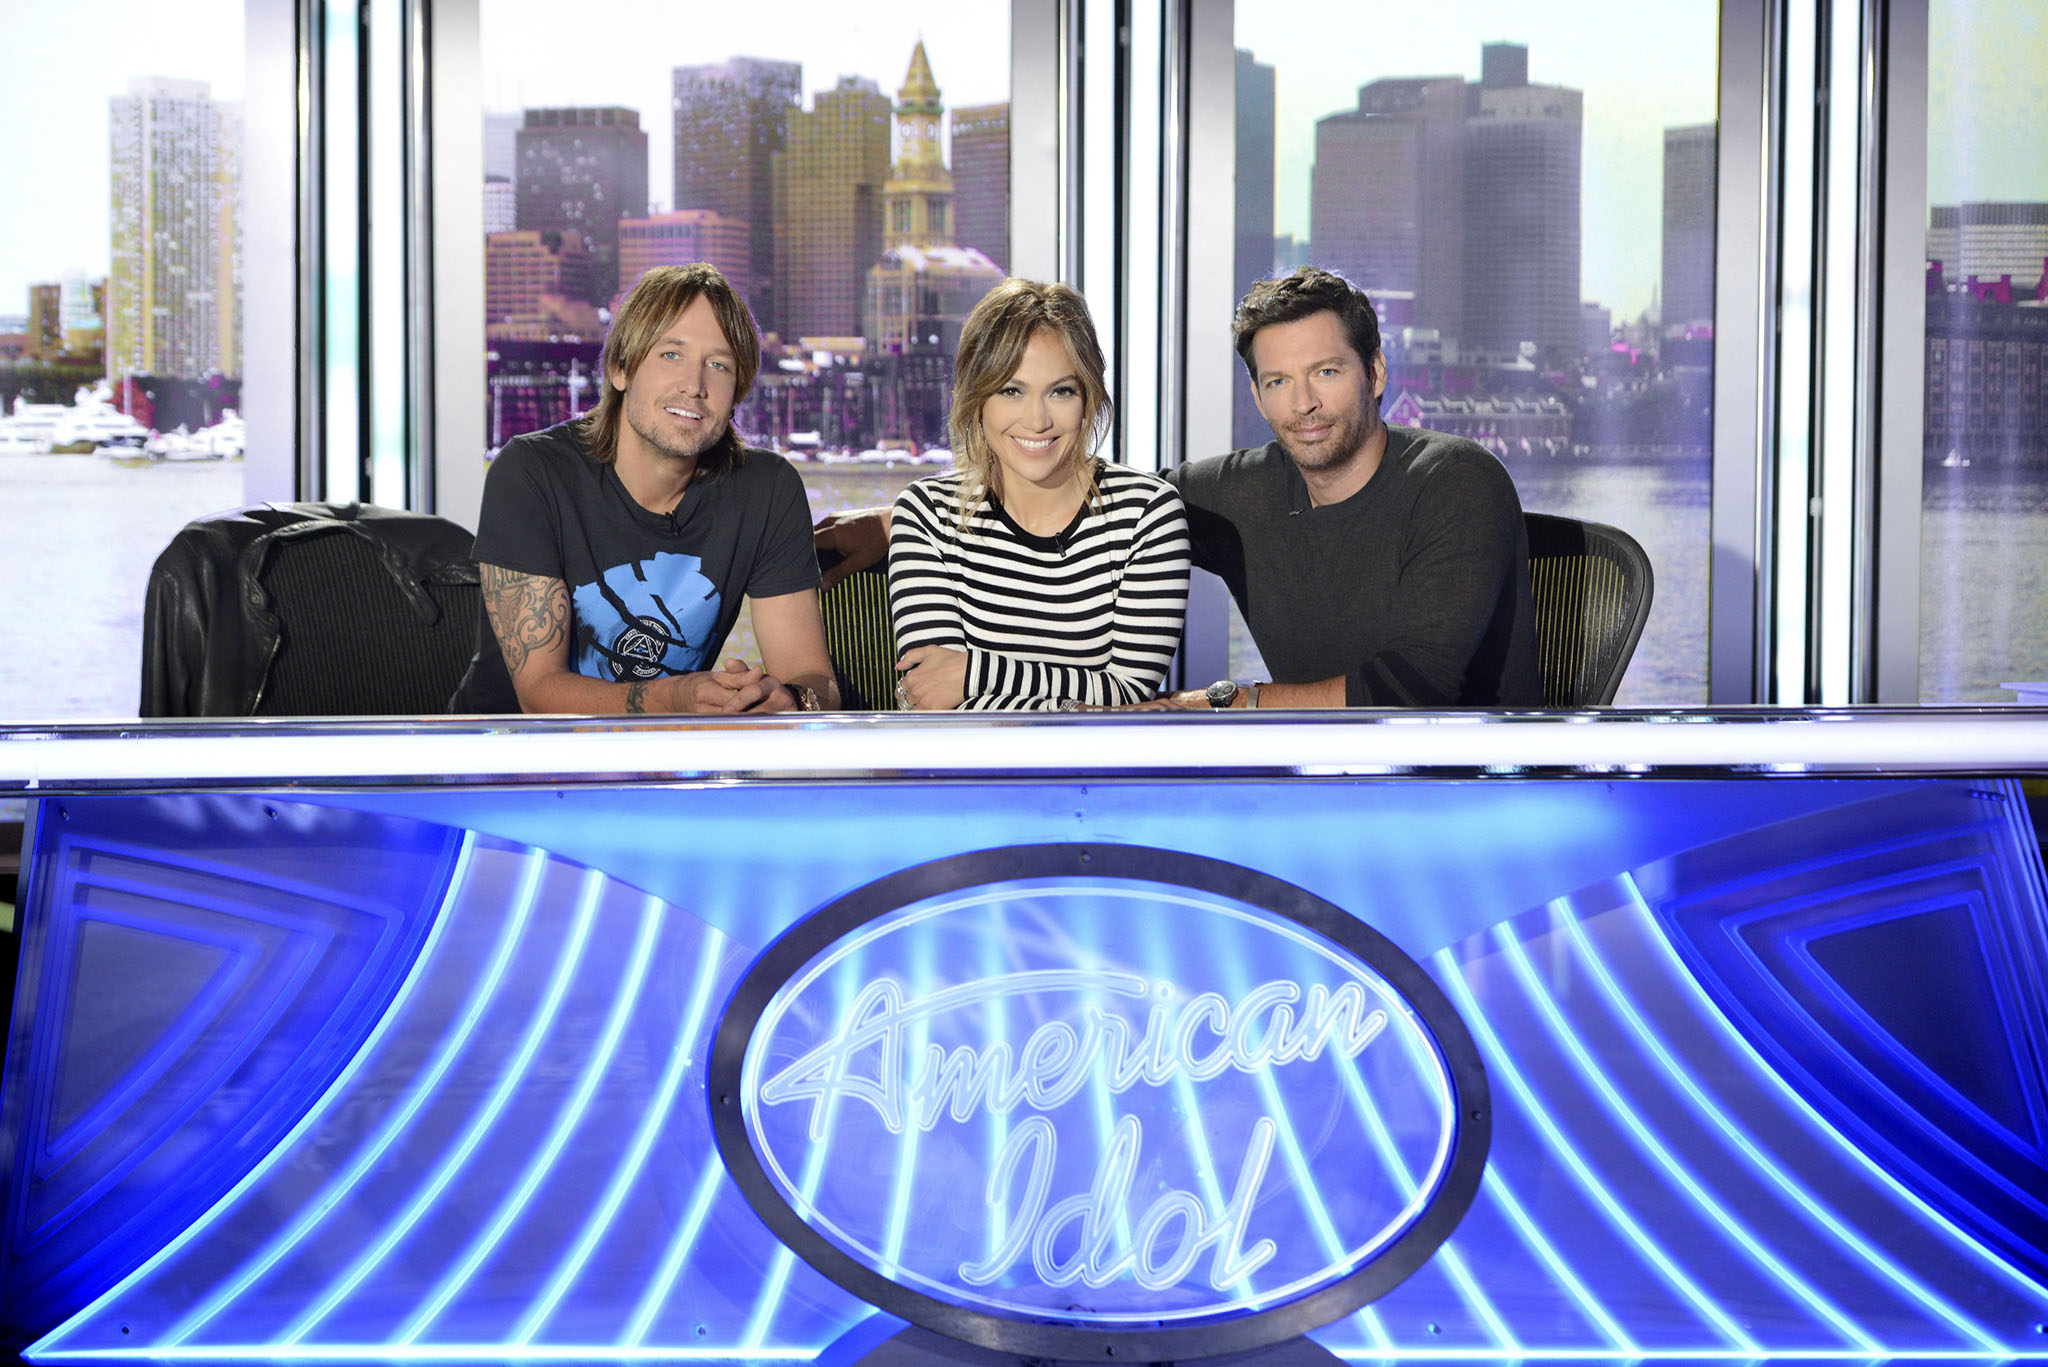 'American Idol' Season 13 Taglines: Can America Pick a Winner?